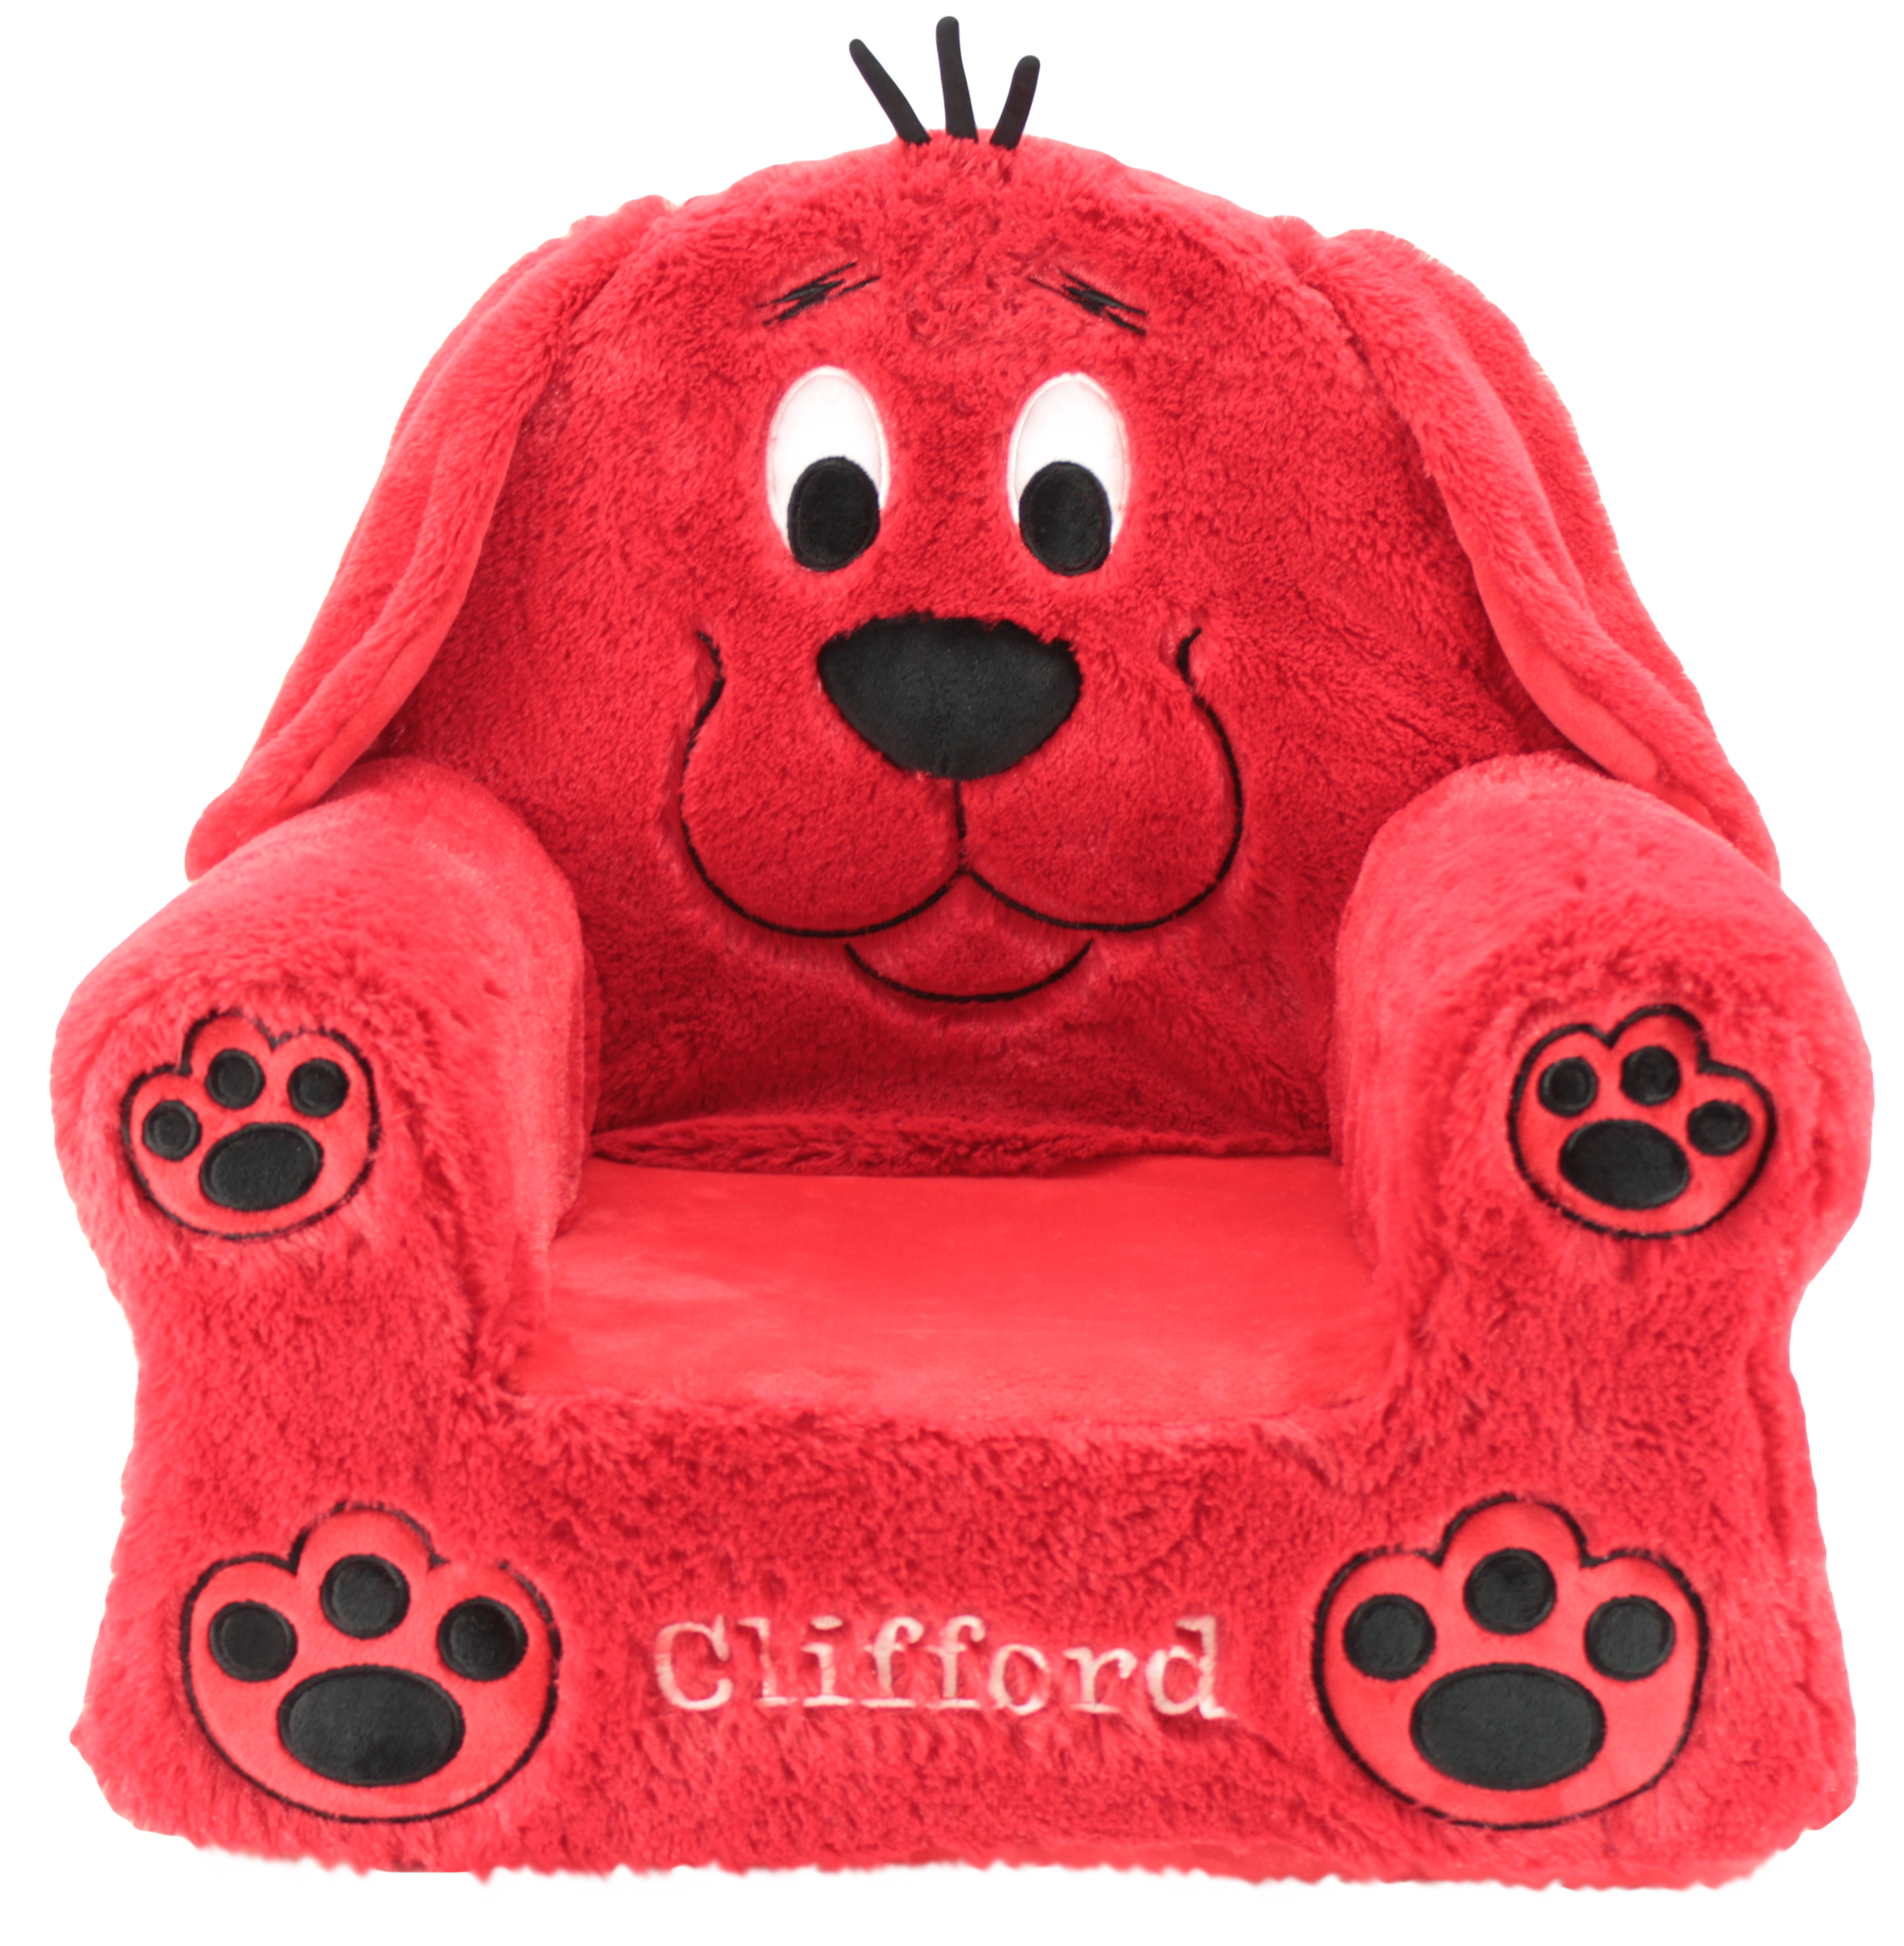 Sweet Seats Clifford Big Red Dog Soft Plush Children S Chair 13